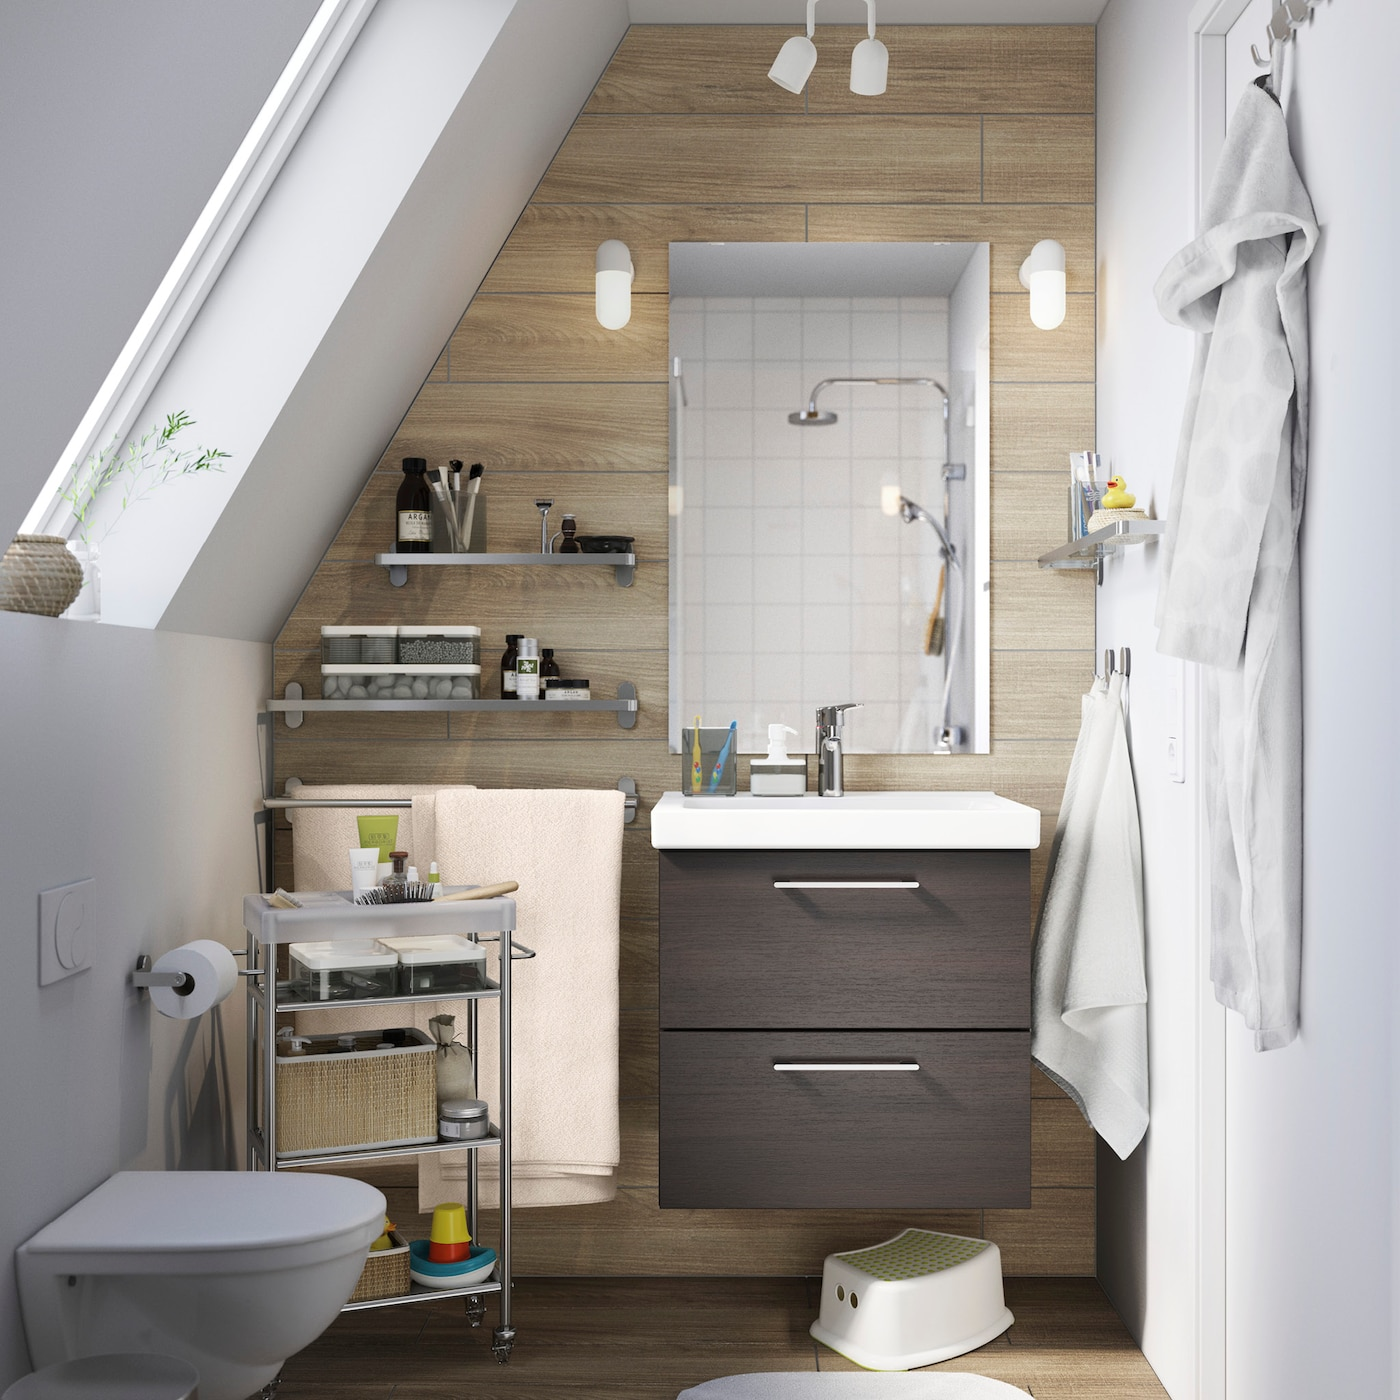 Bathroom scene, with a GODMORGON/BRÅVIKEN sink cabinet and mirror on the rear wall.